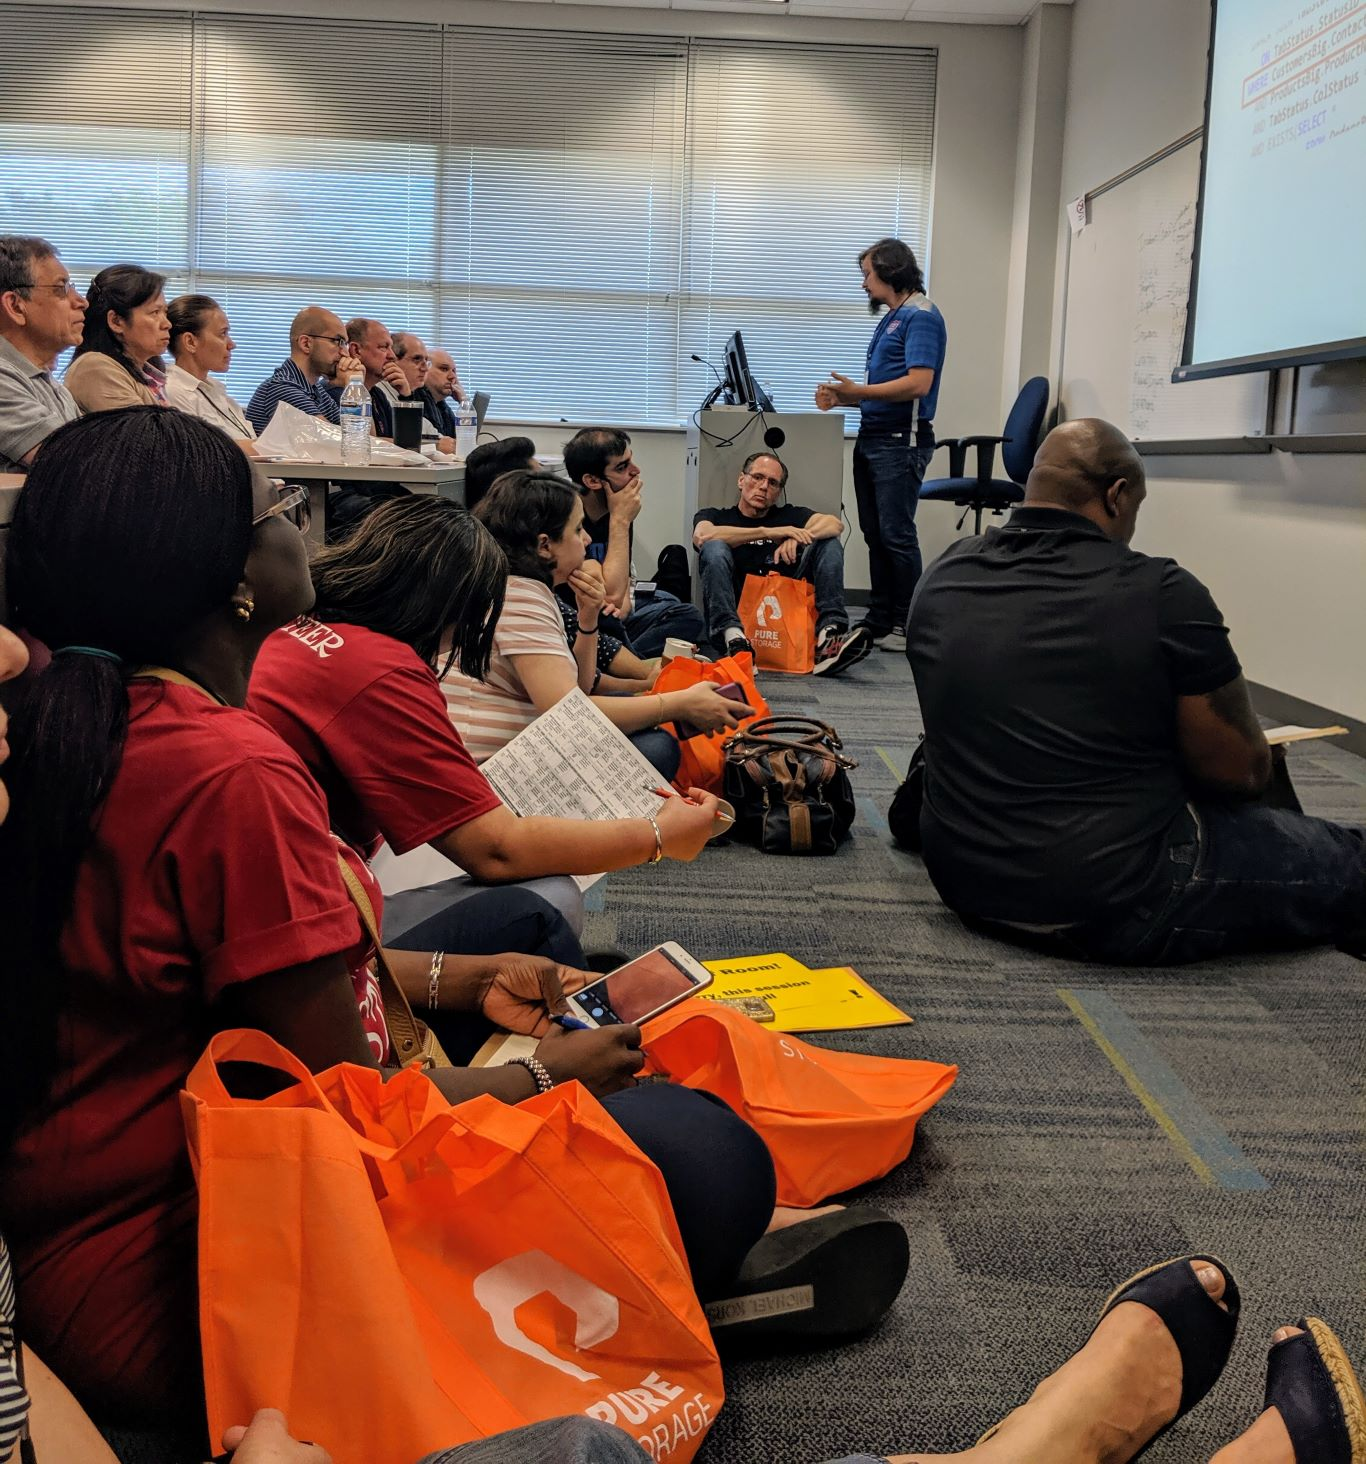 Photo of people sitting on the floor in Fabiano's talk